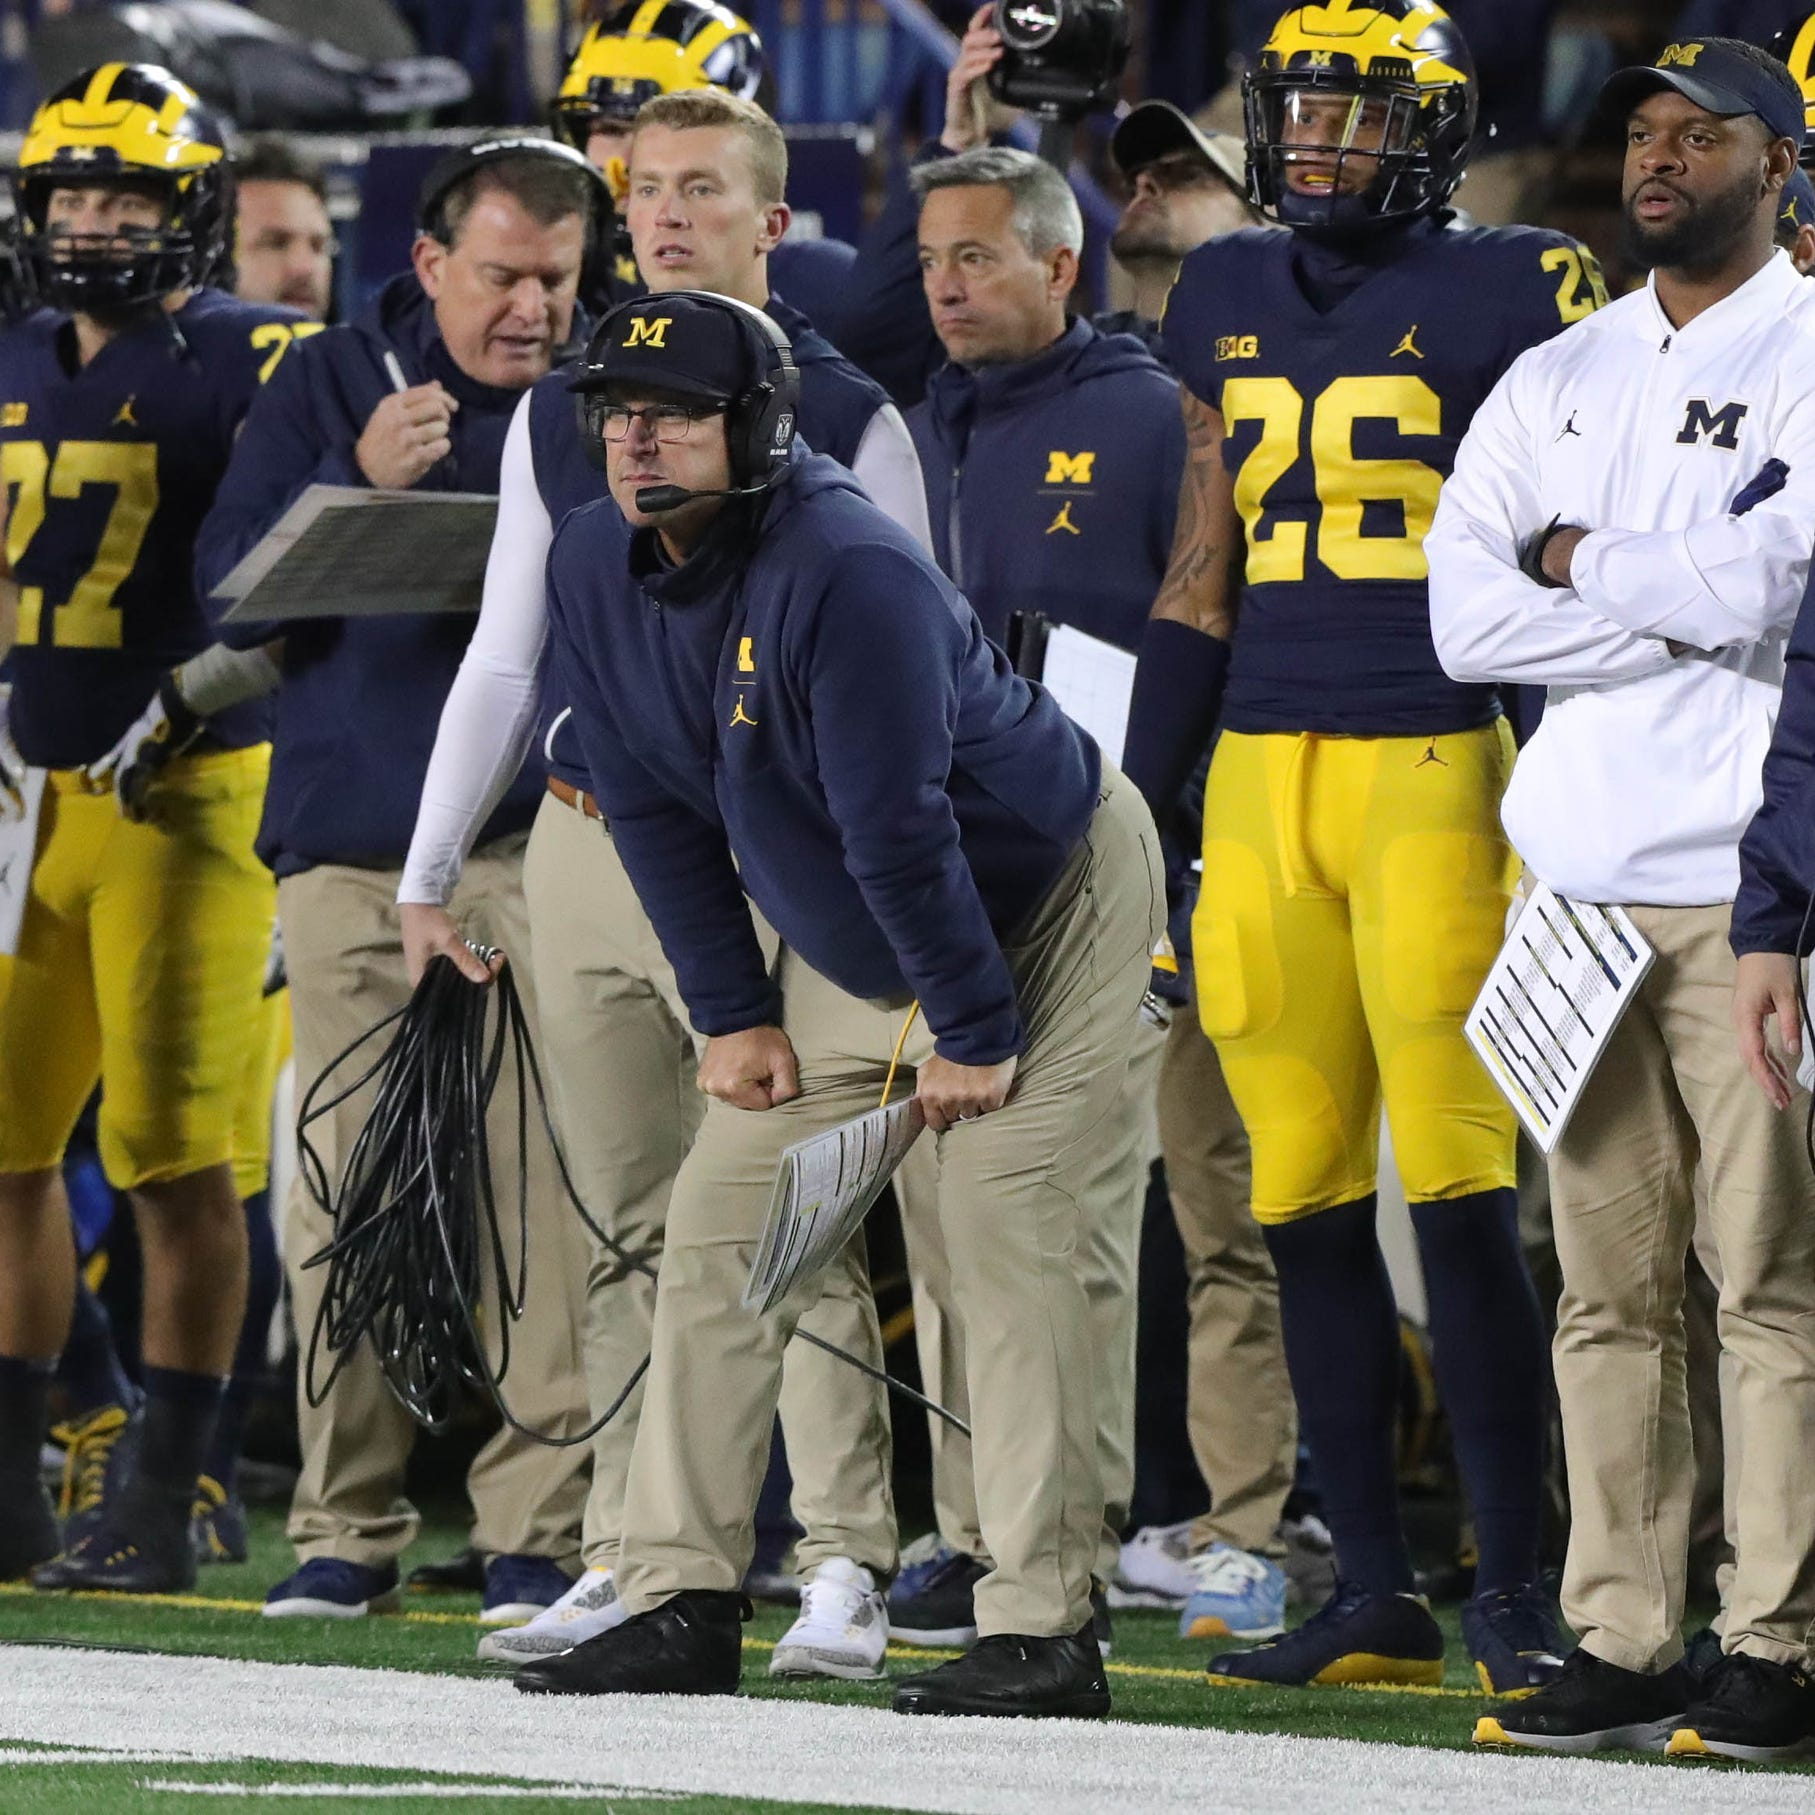 Michigan football film study: Ed Warinner's impact is noticeable